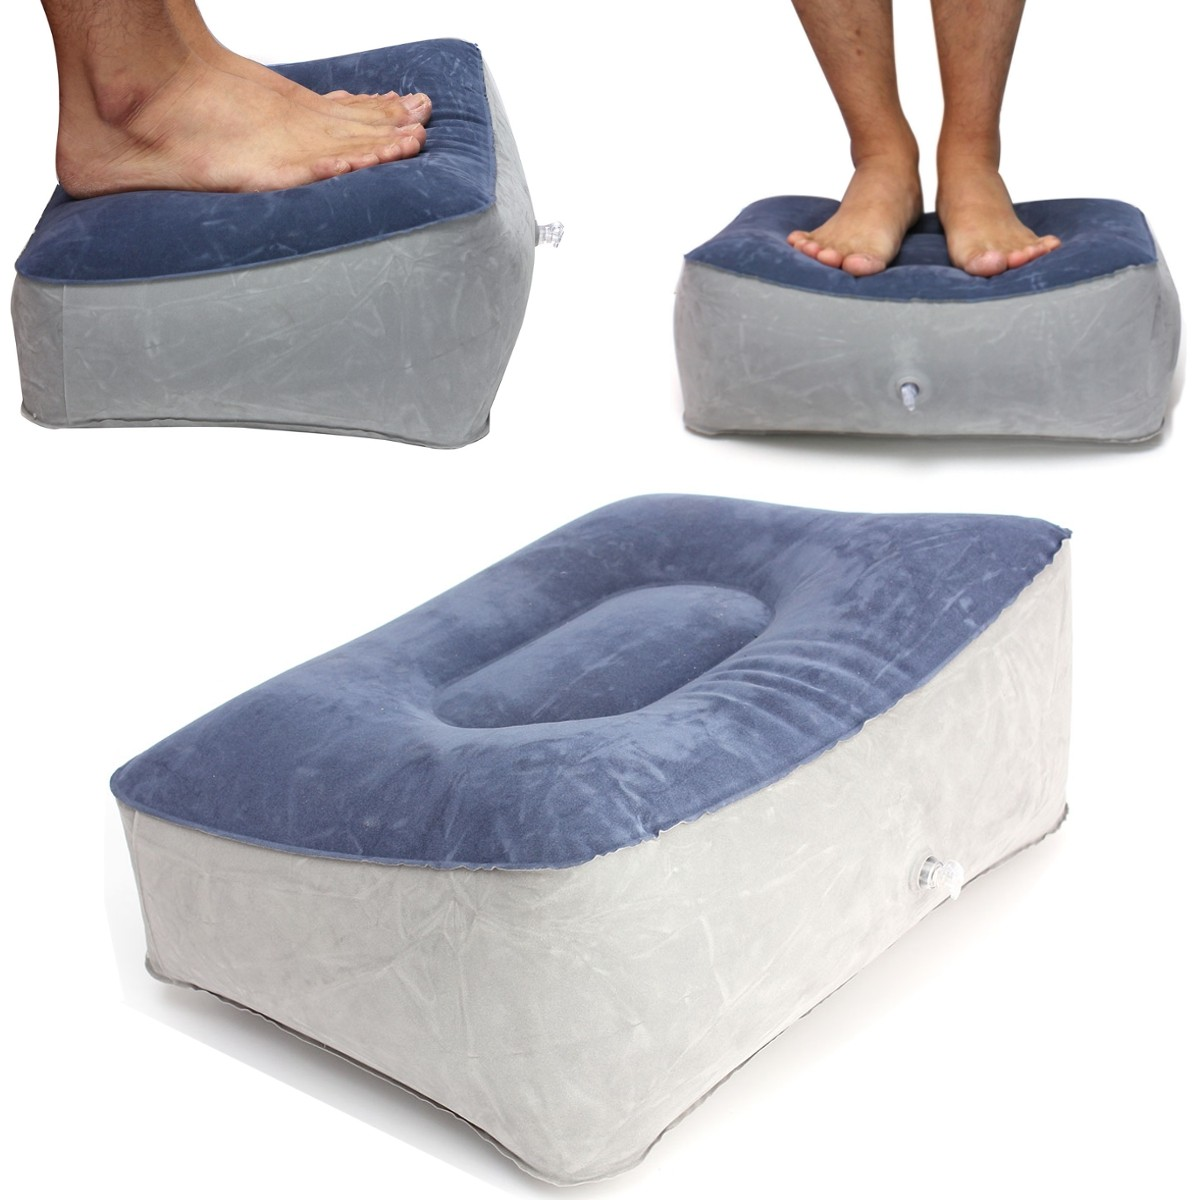 Inflatable Foot Rest Pillow Cushiontravel Home Help Reduce